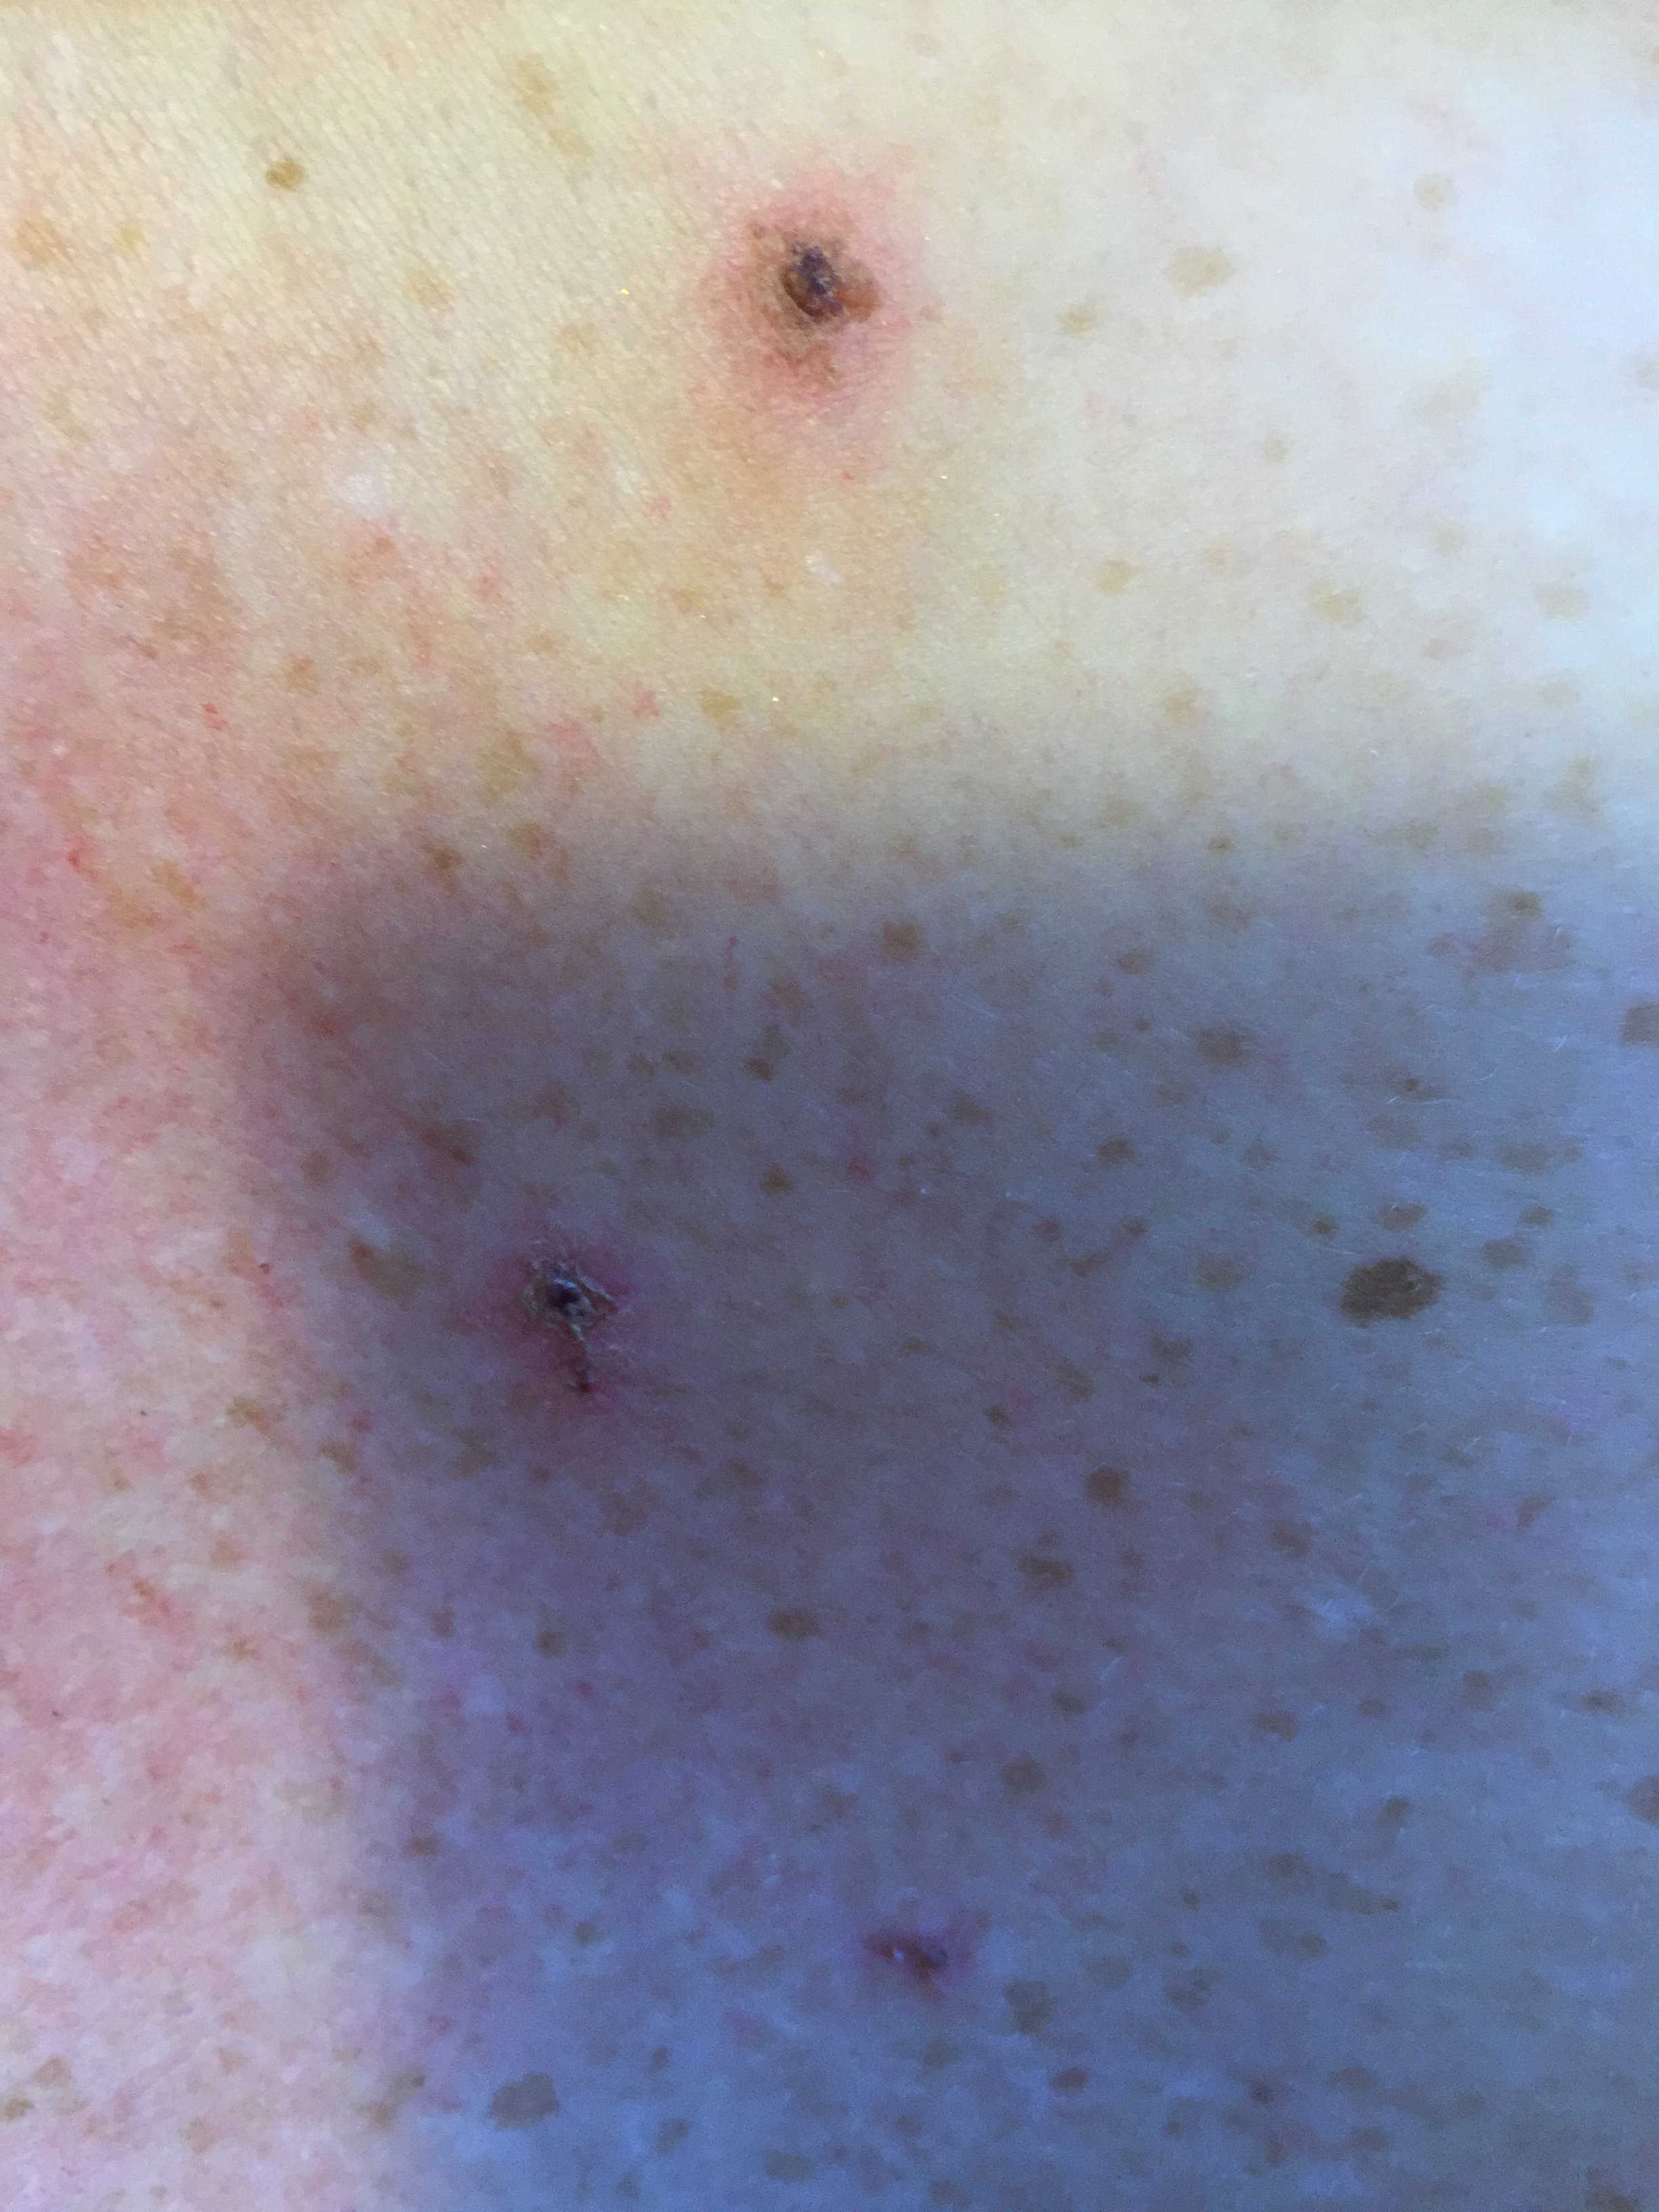 morgellons disease Read about the causes, symptoms, and treatment of morgellons disease, a little-known disorder also referred to as fiber disease or skin crawling disease.